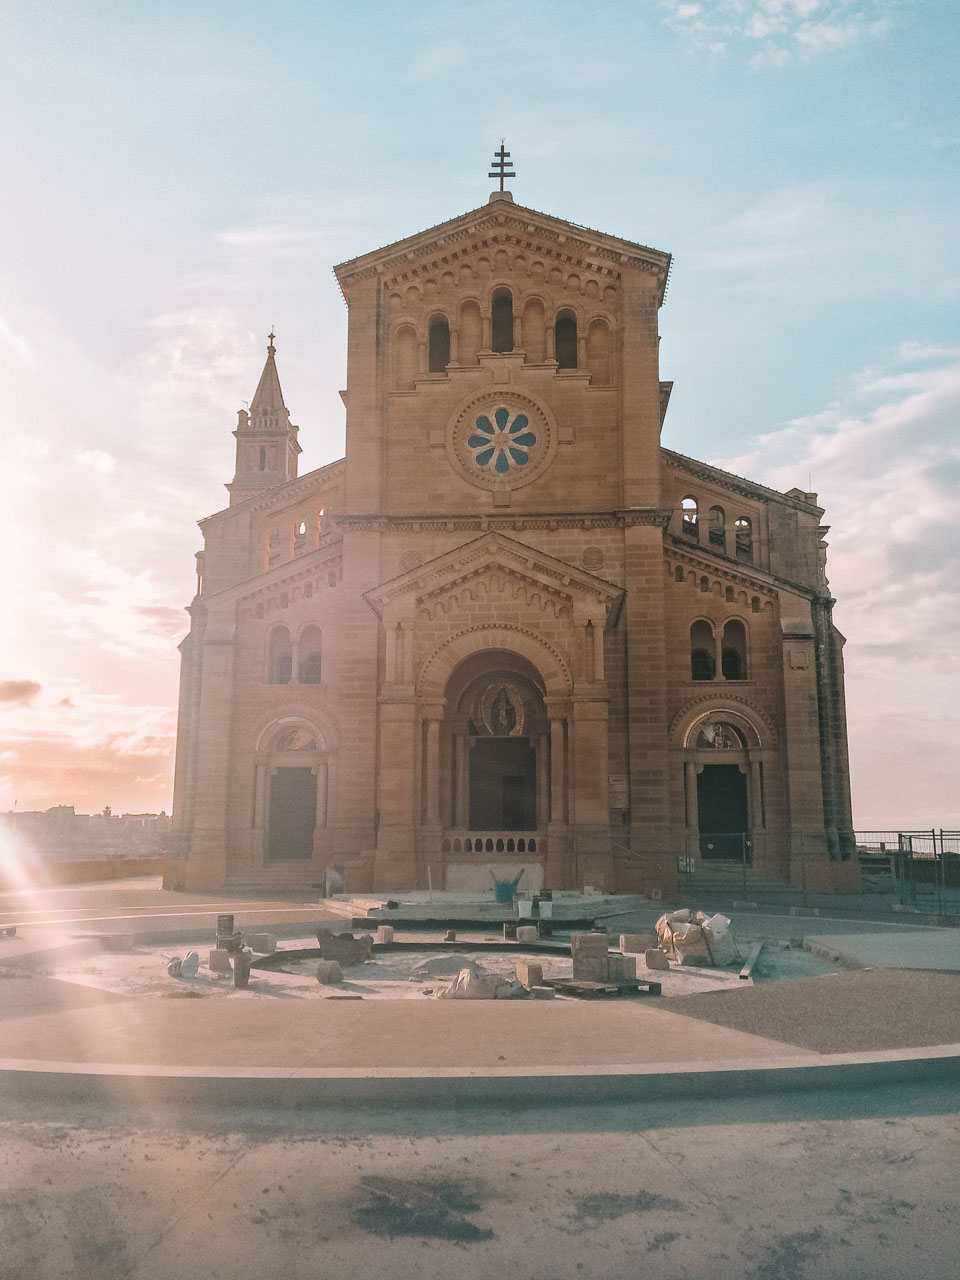 The outside of the Basilica of Ta' Pinu in Gozo during sunset